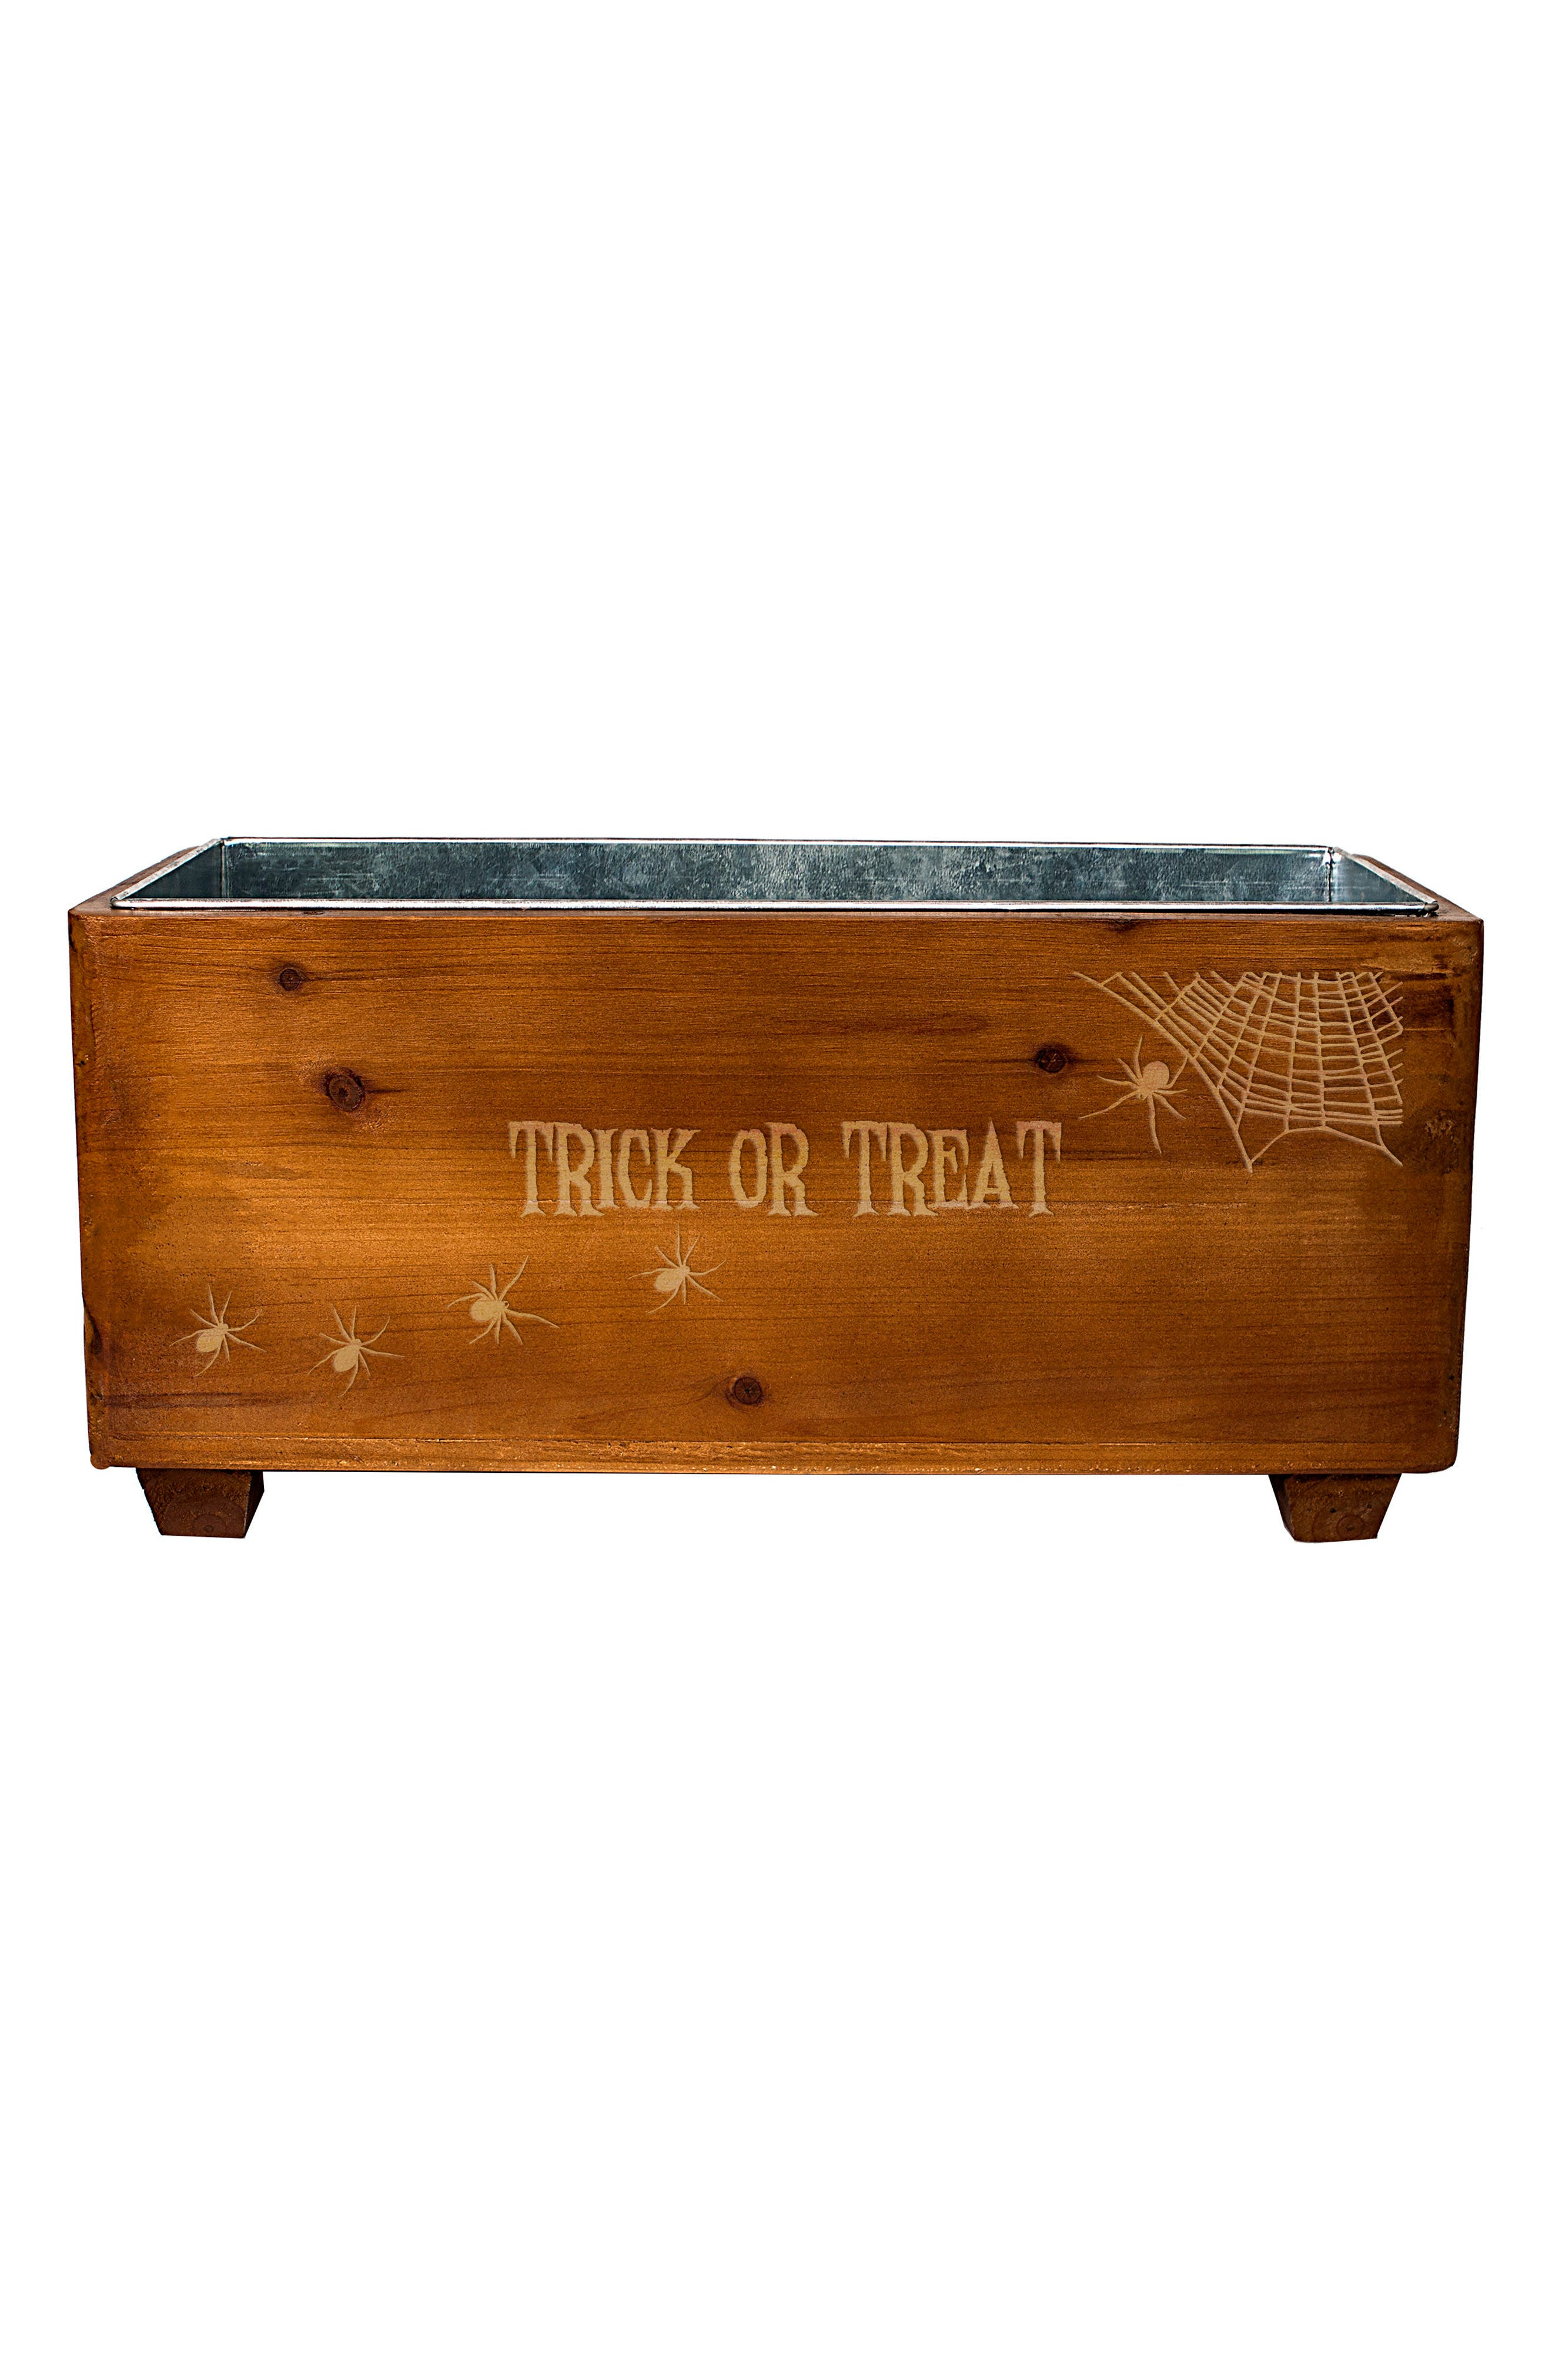 Trick or Treat Wood Wine Trough,                             Main thumbnail 1, color,                             Brown